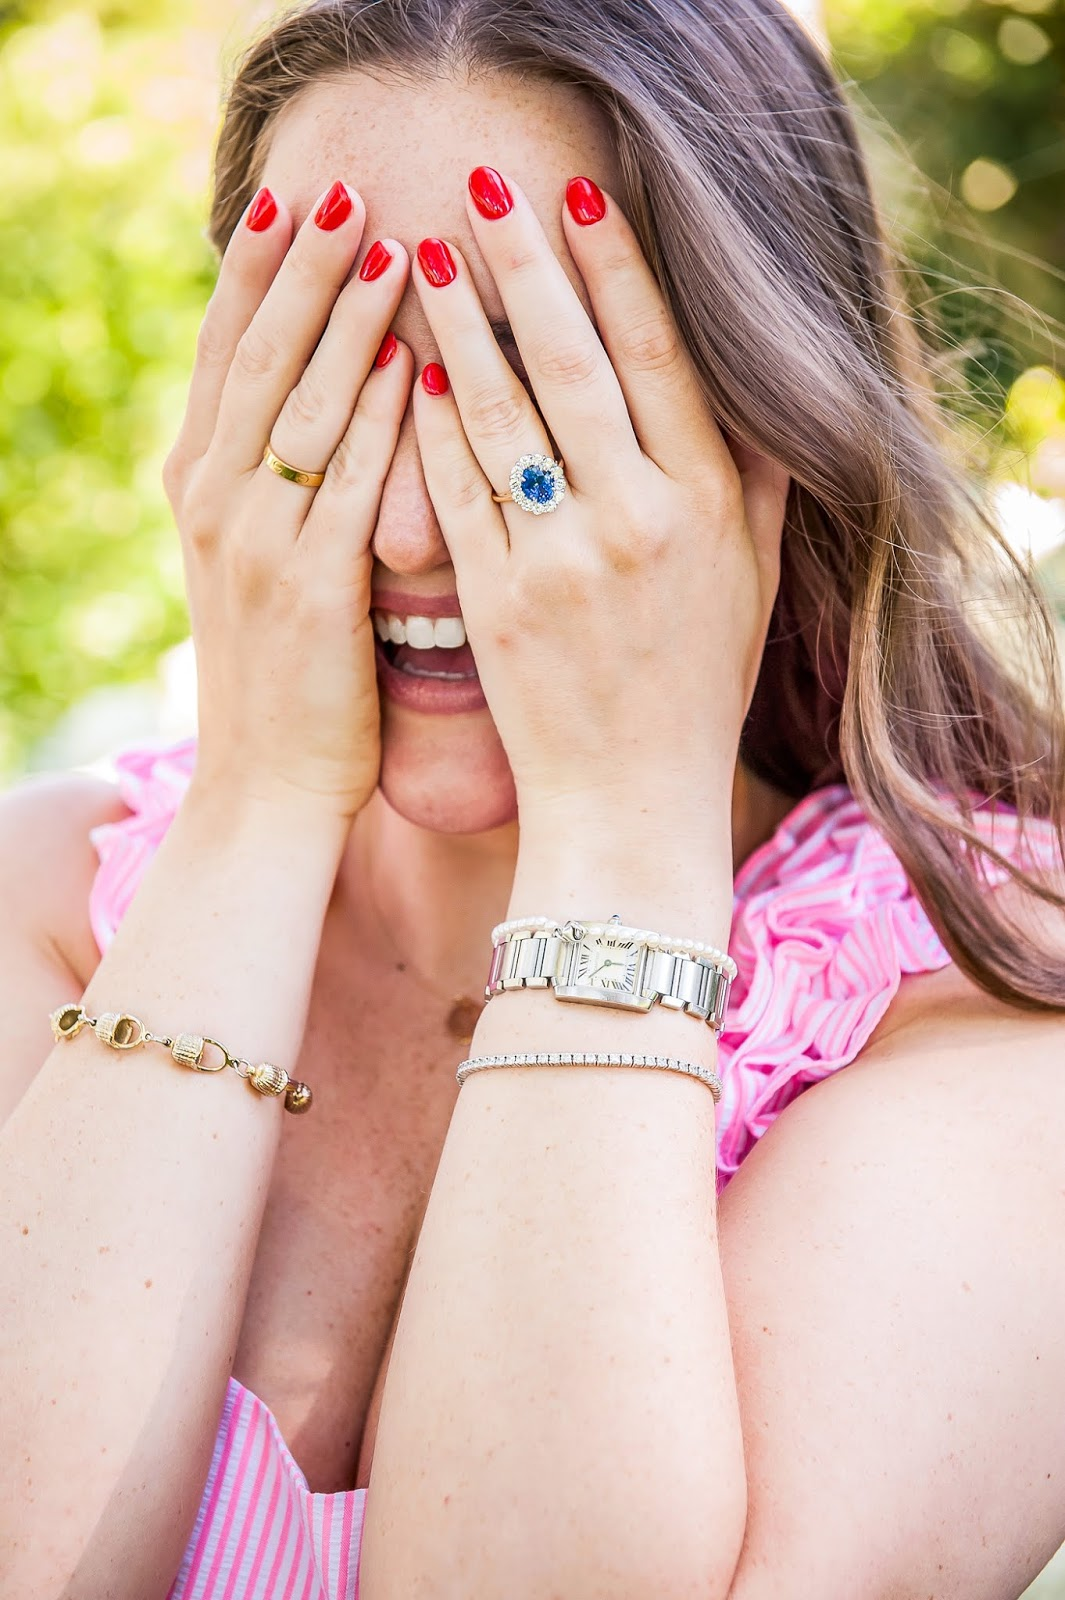 Everyday jewelry featured by popular New York style blogger, Covering the Bases